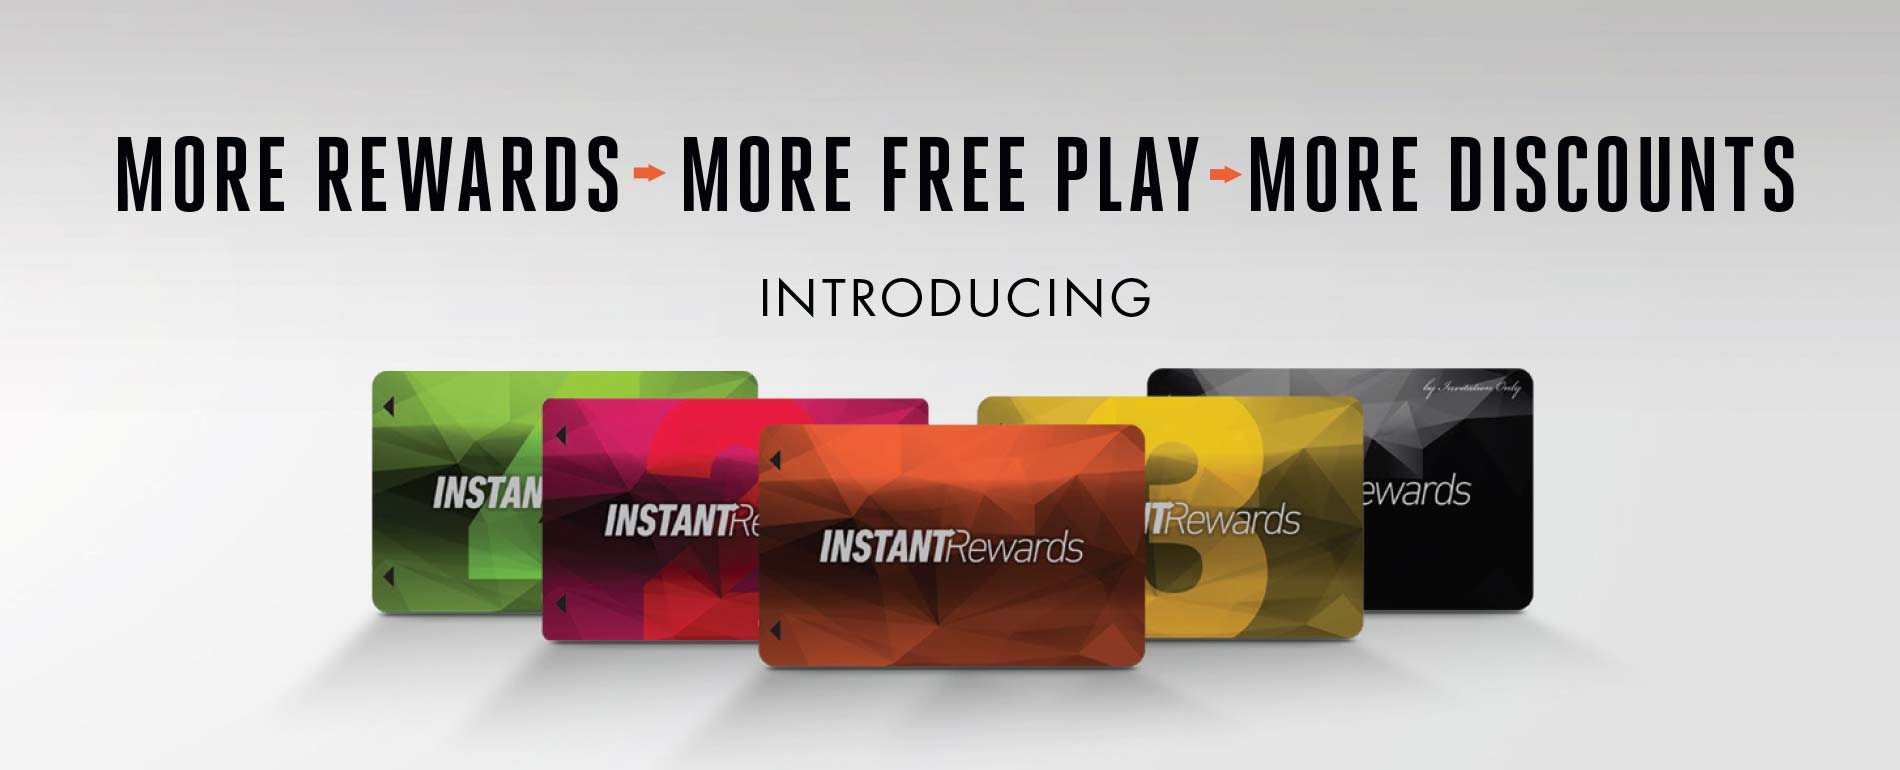 Poconos Player's Club Card Instant Rewards - Casinos in PA